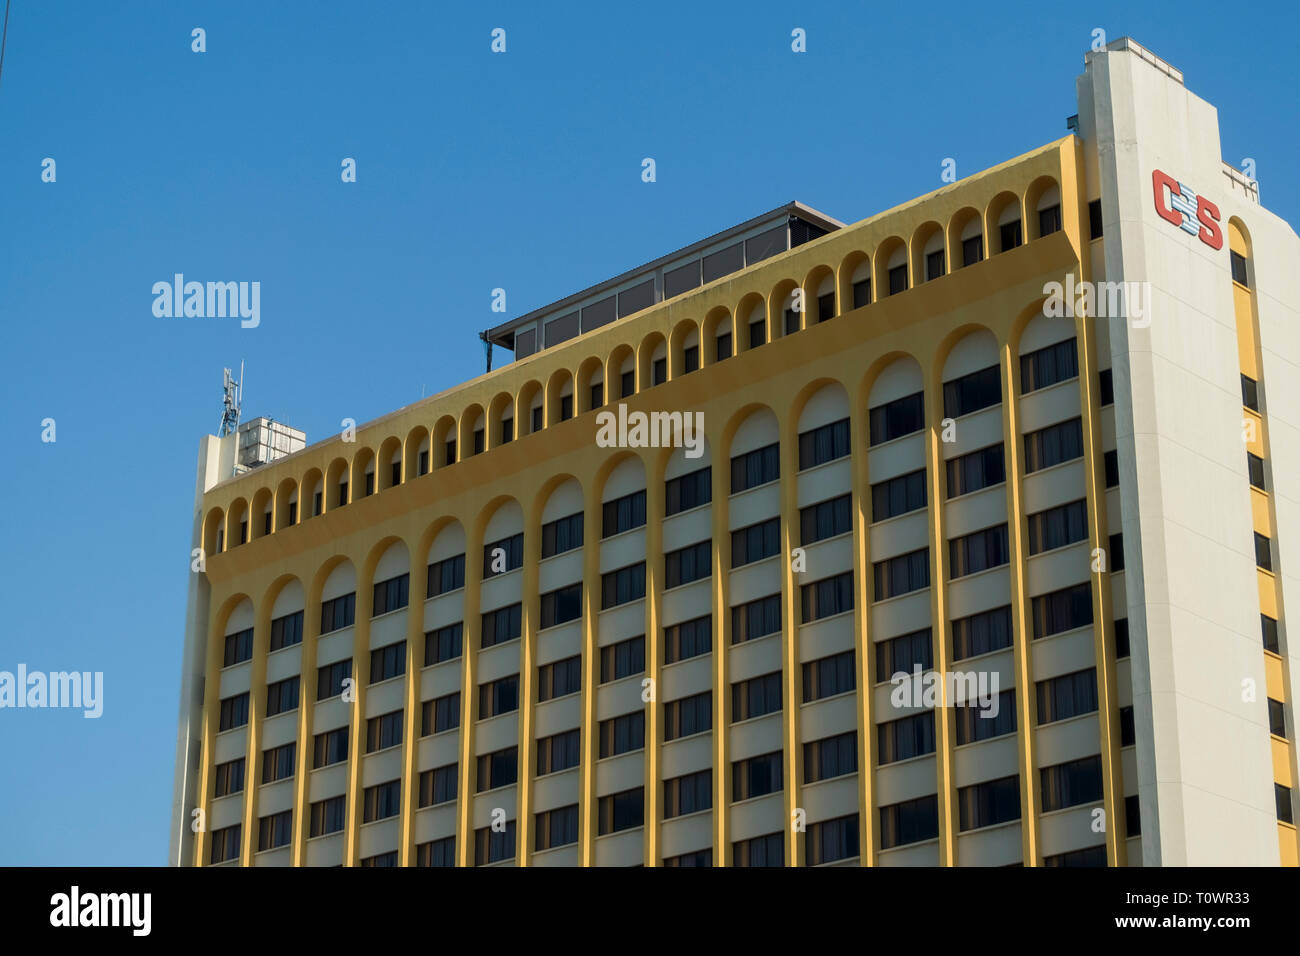 A yellow building from the 1960's, 1970's in Kota Kinabalu, Sabah, Borneo, Malaysia. - Stock Image